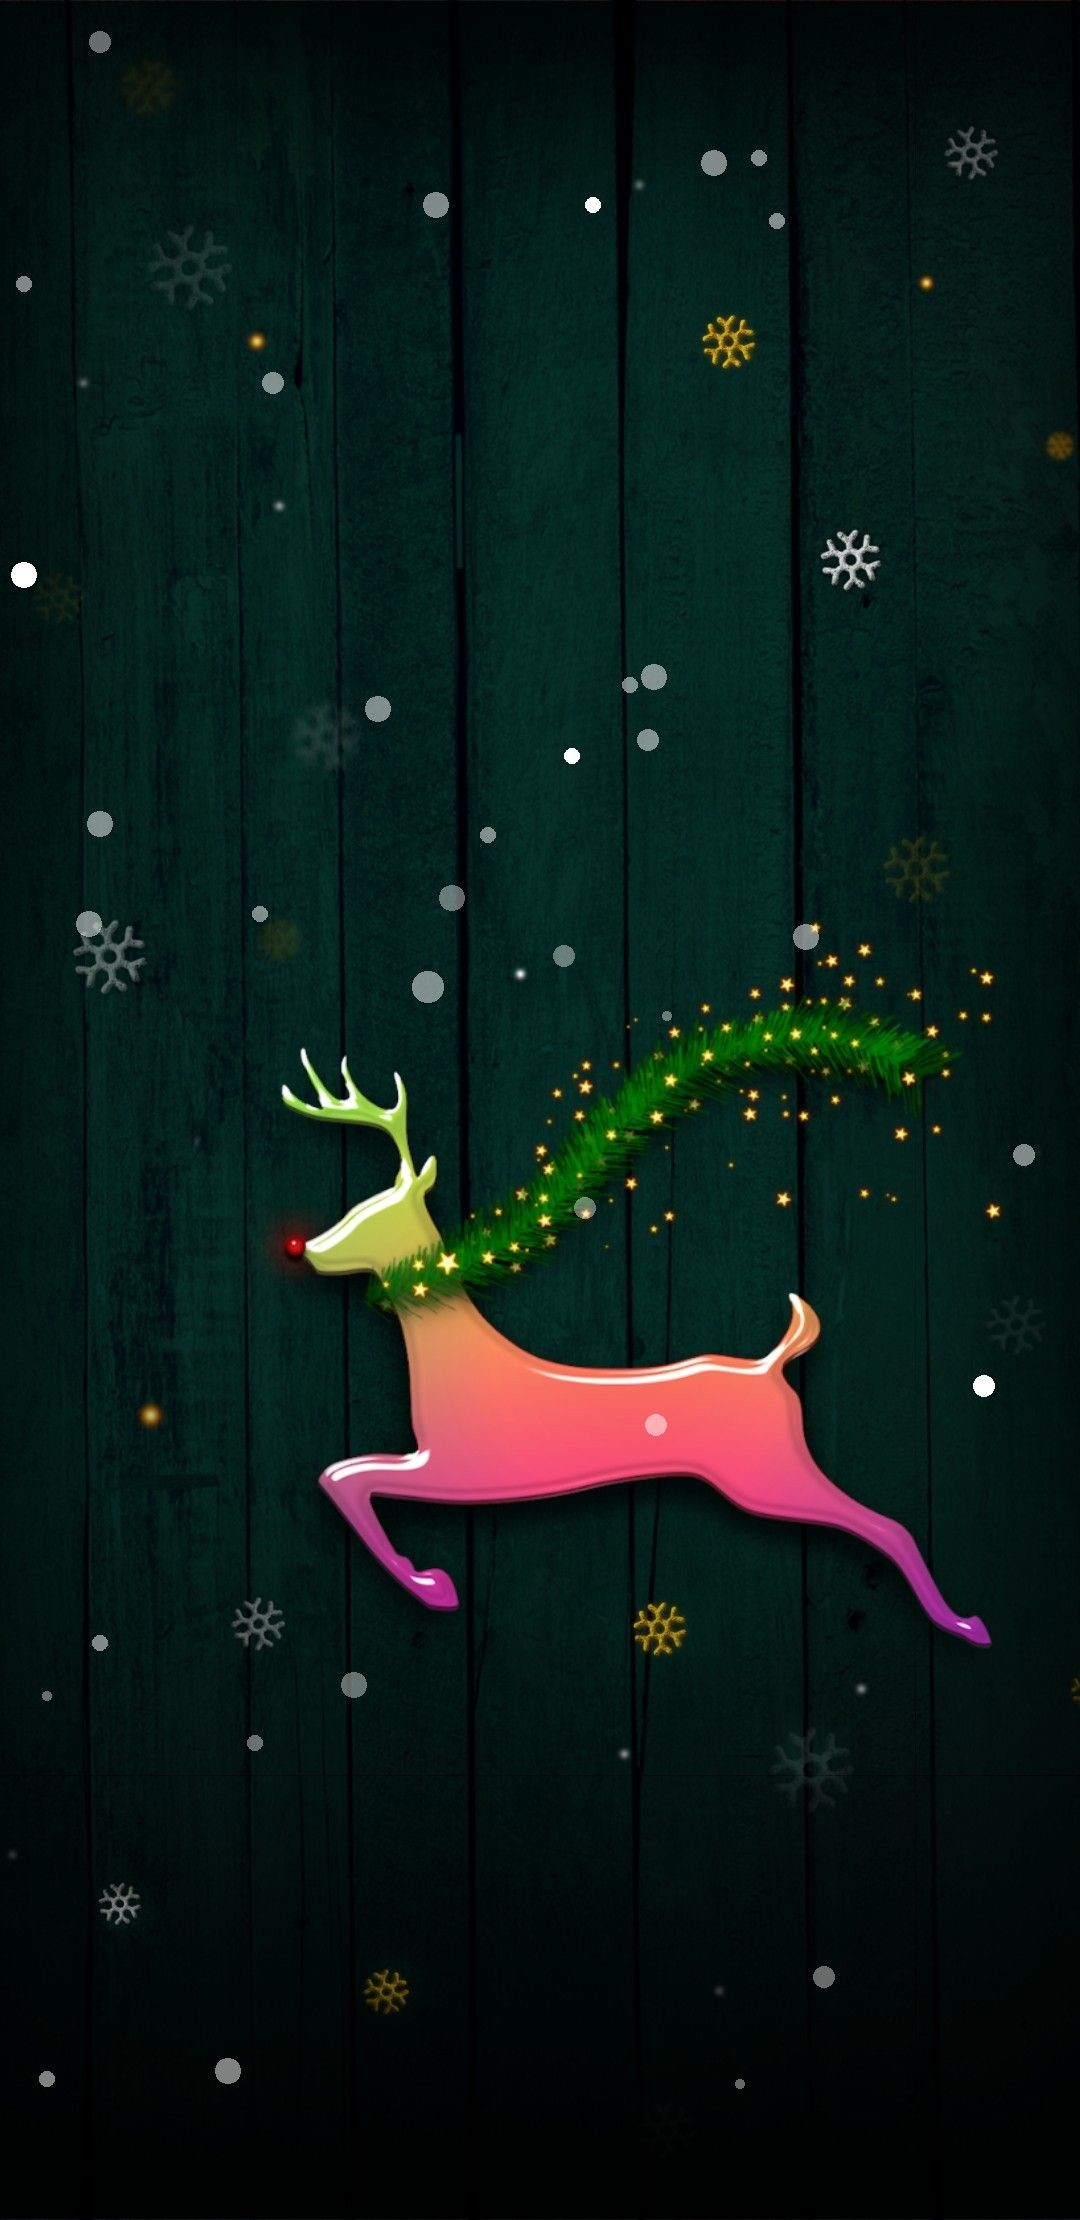 213 2133112 rudolph christmas wallpaper christmas wallpaper iphone christmas ornament